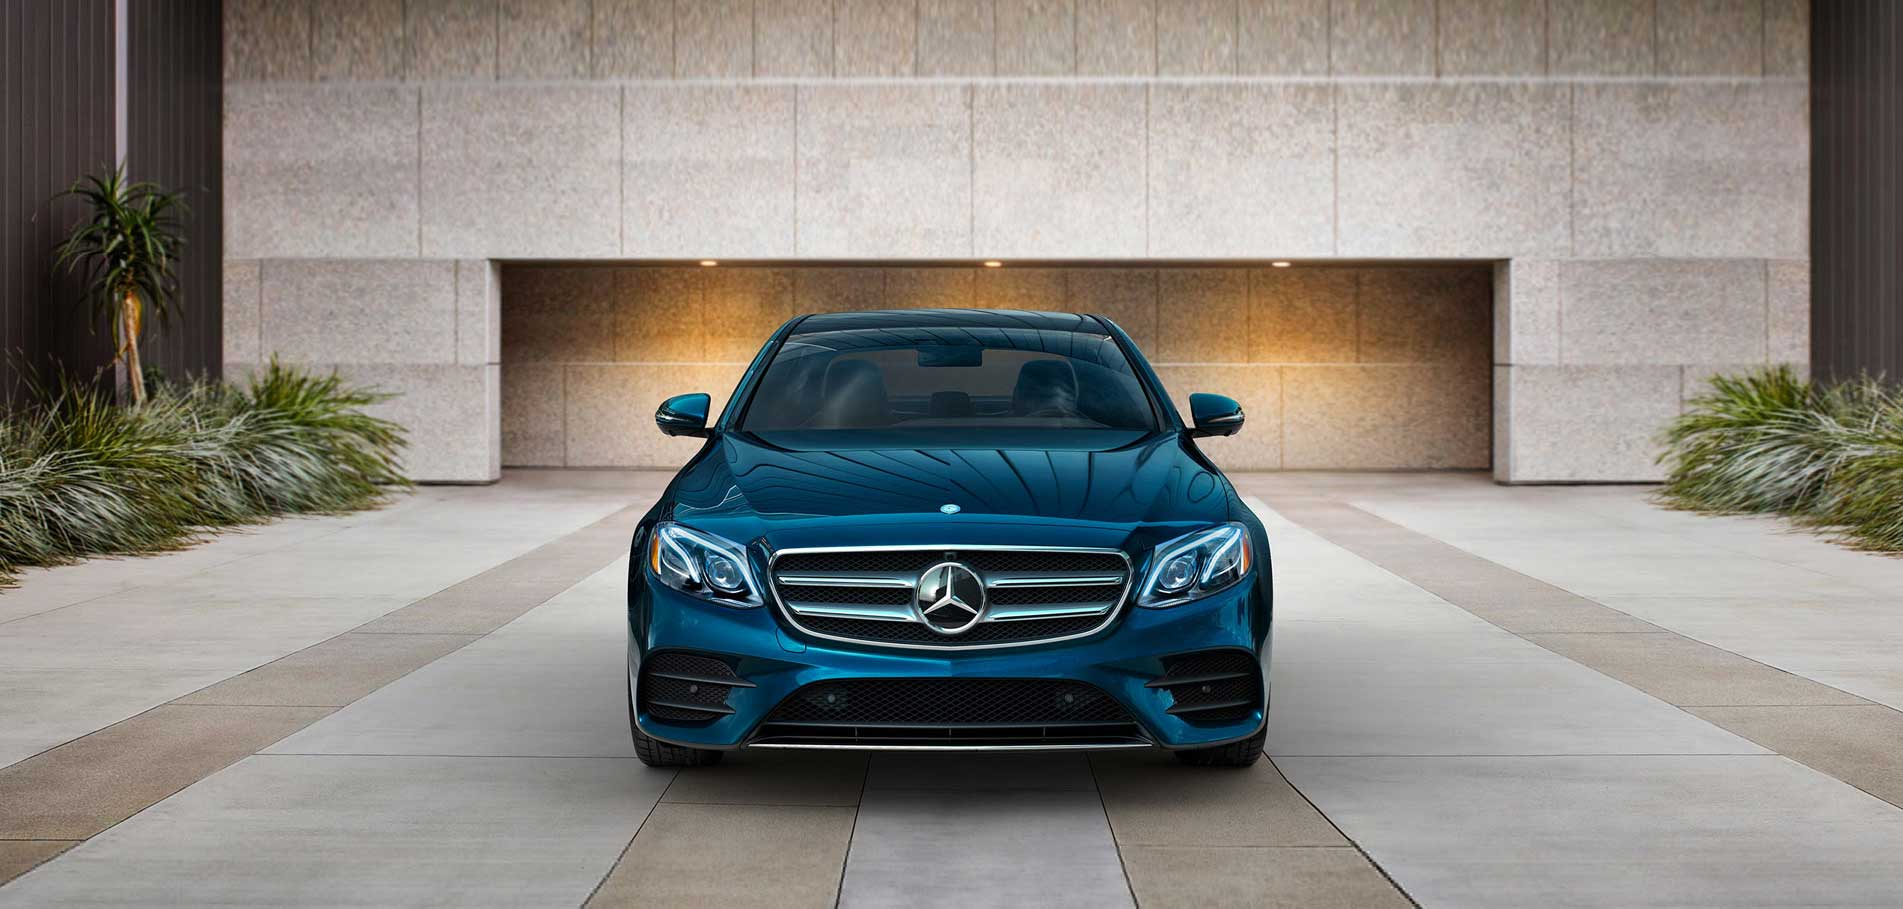 Used car dealer in bronx long island nyc ny new webster for Mercedes benz dealer in bronx ny